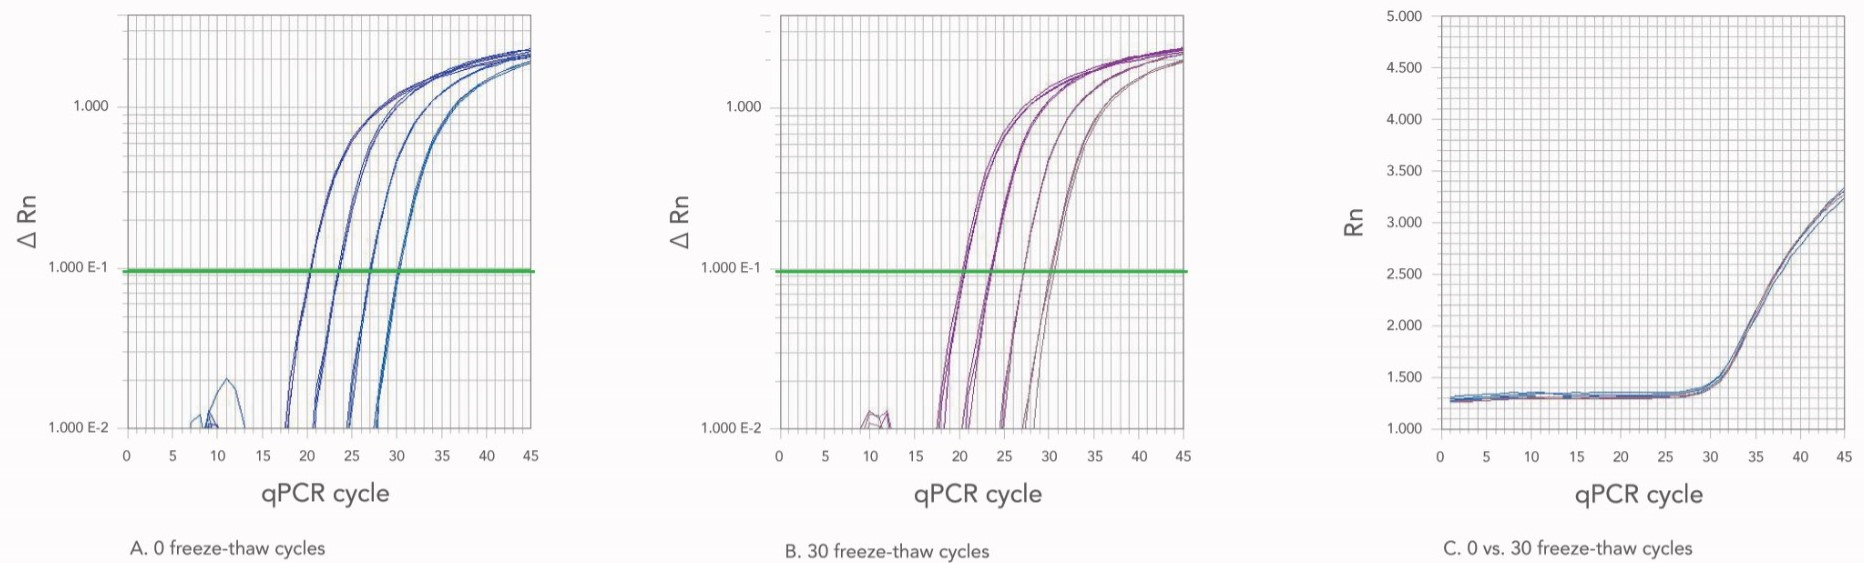 30 cycles of repeated freeze and thaw does not alter oligo stability